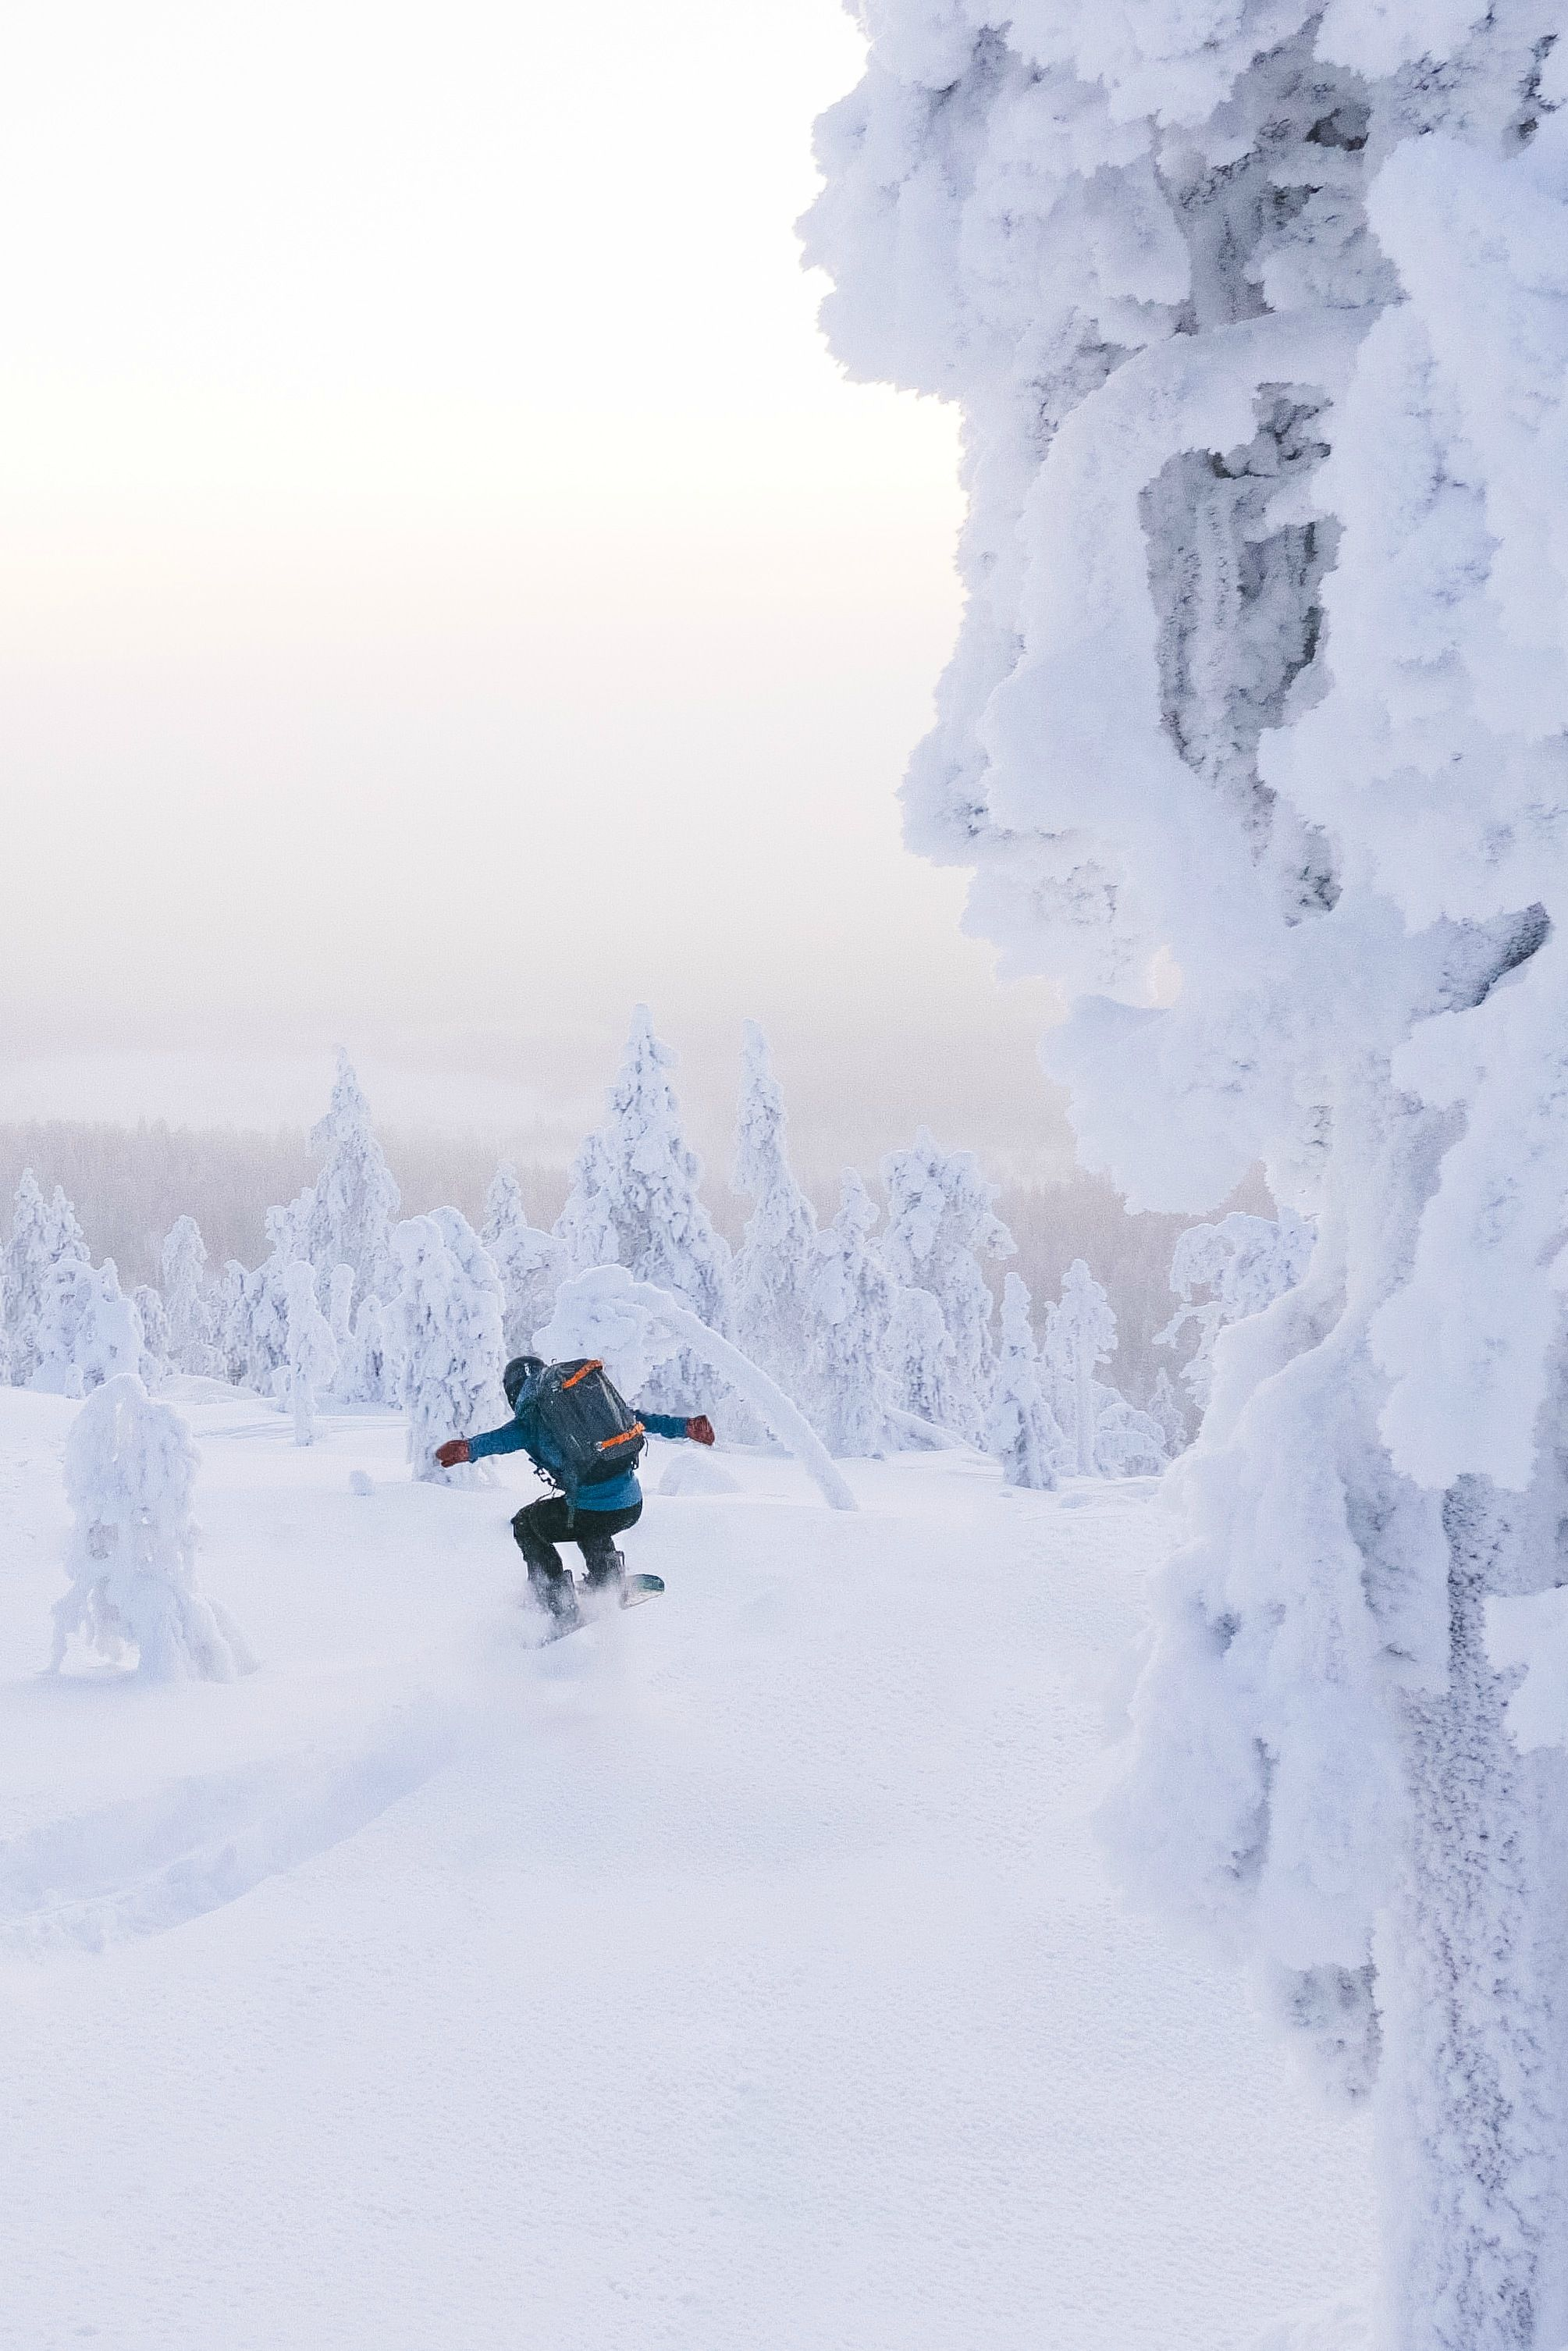 Skiing Snowboarding Photography Free Skiing Off Piste Back Country Skiing Pic Snowy Trees Snowboarding Photography Skiing Photography The Great Outdoors